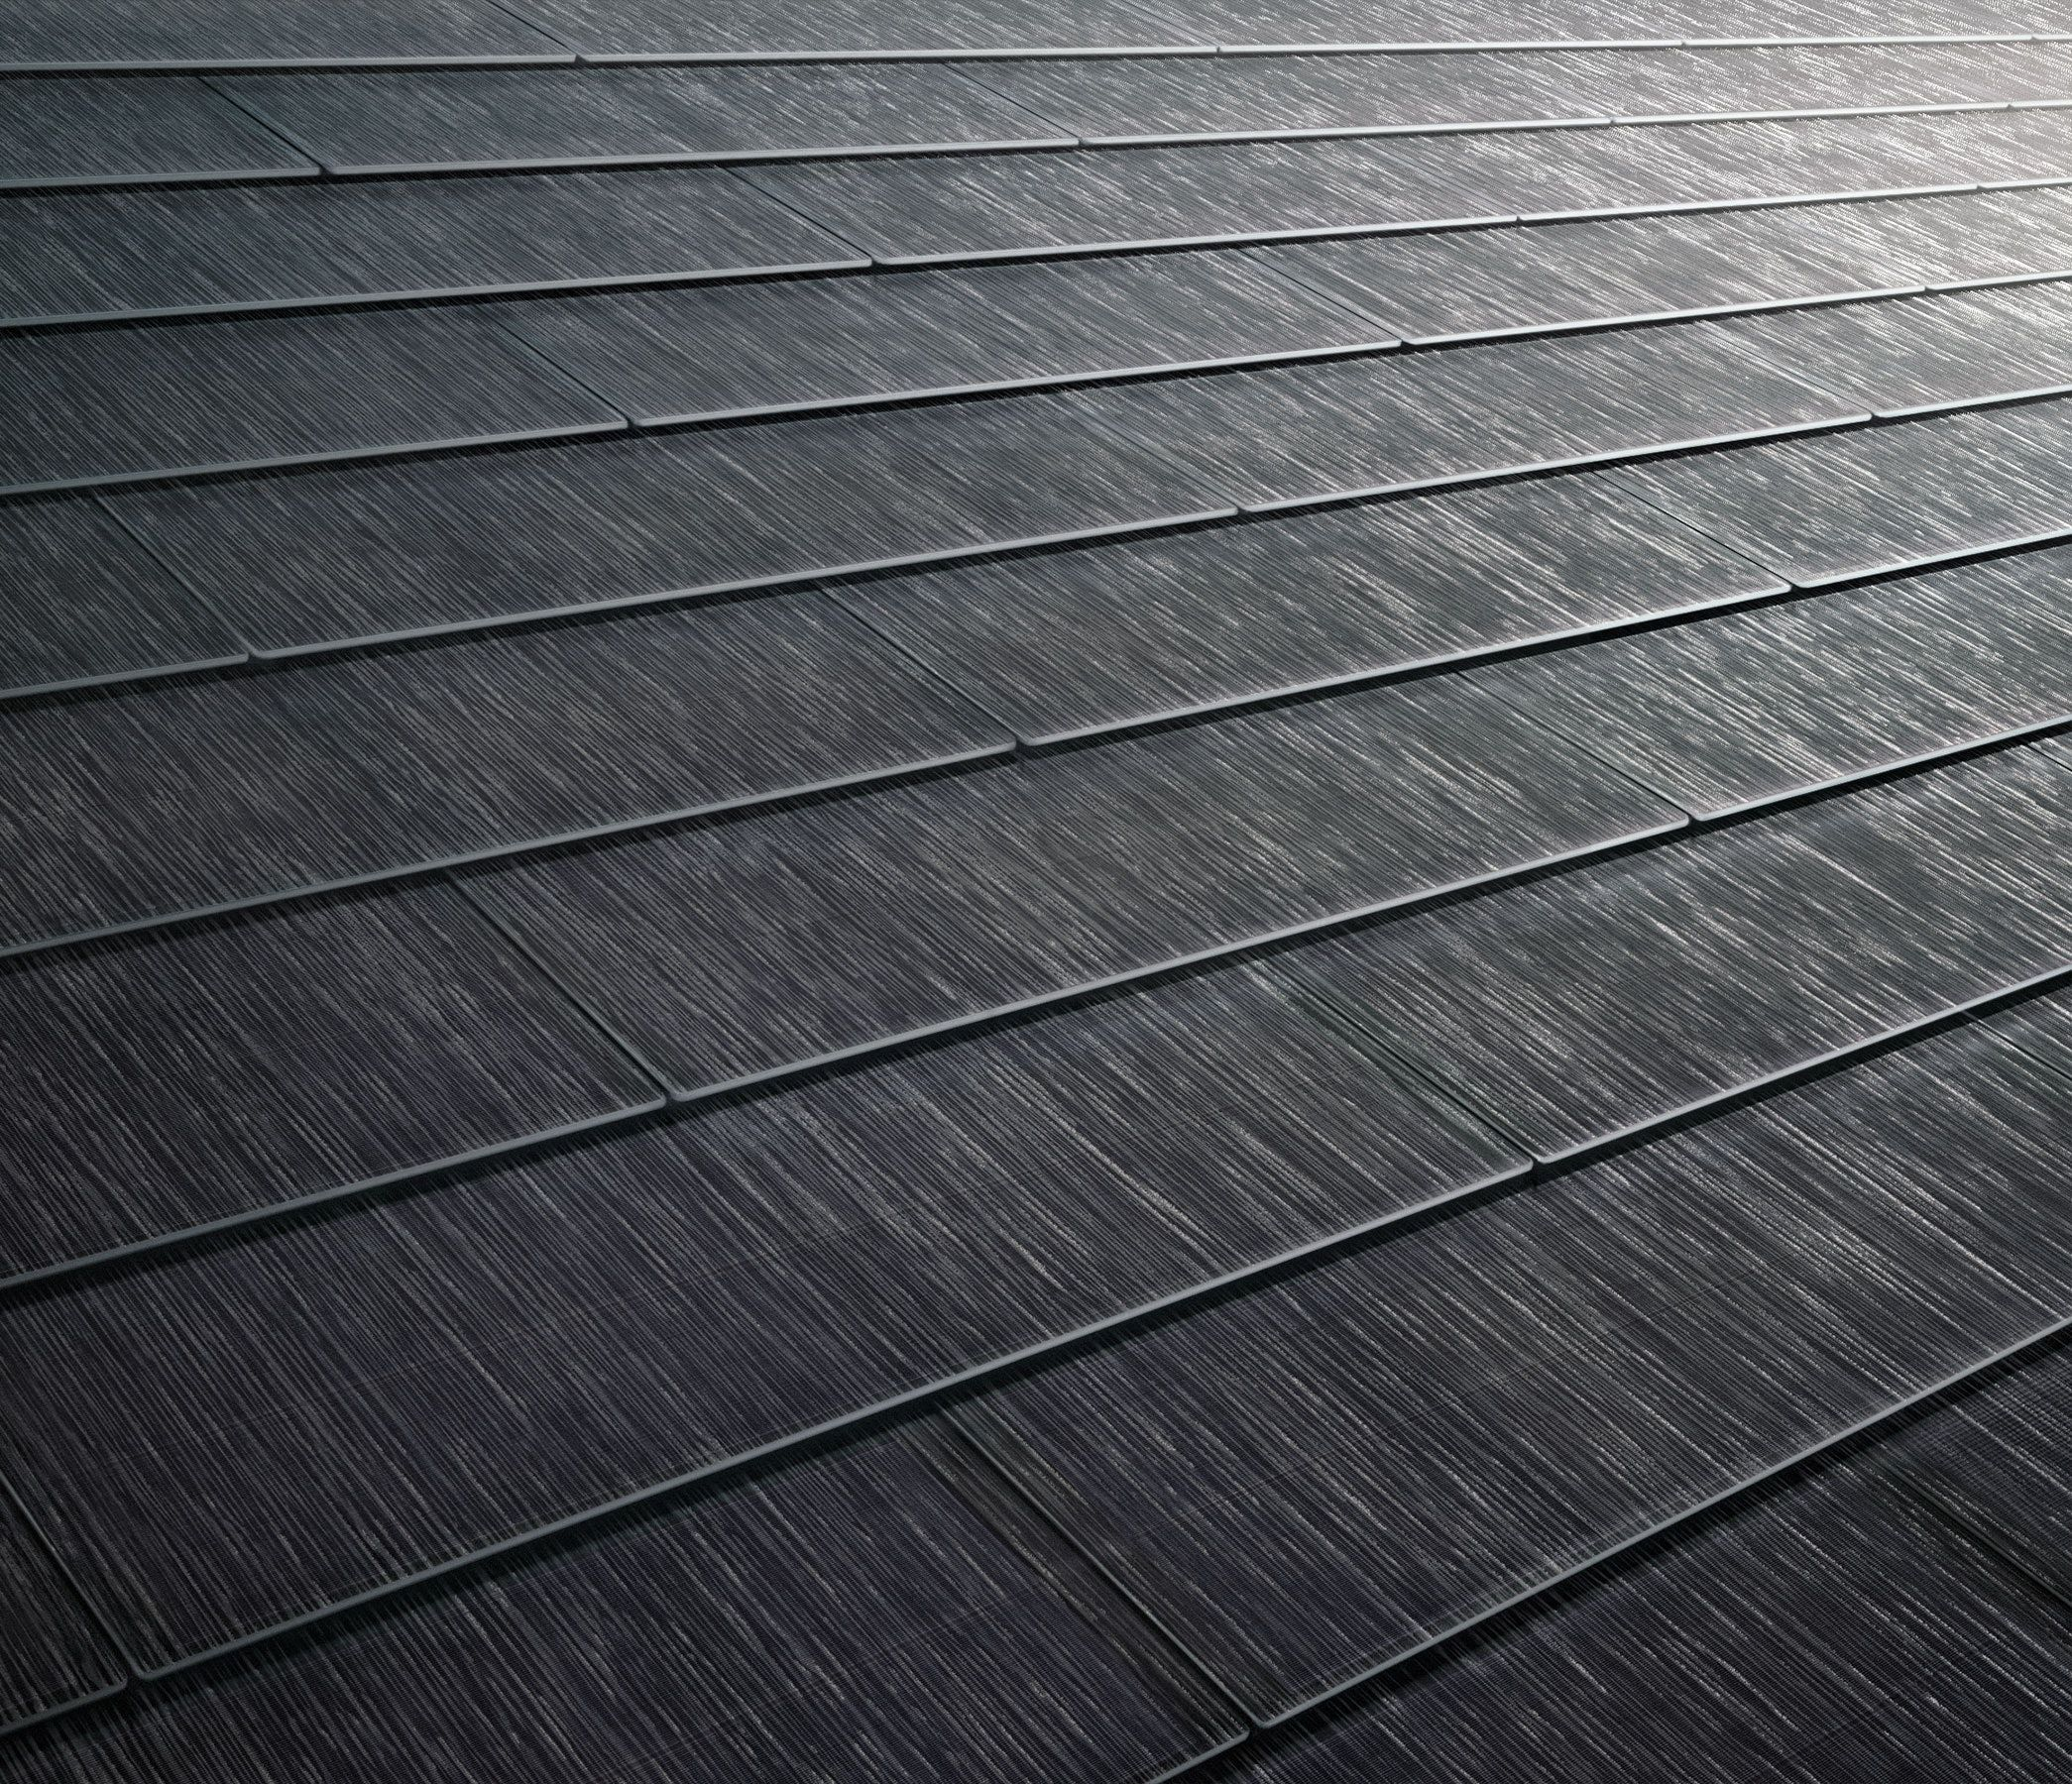 Tesla Solar Roof How To Buy Install Times Pricing And Availability In 2020 Solar Panels Roof Solar Roof Tesla Solar Roof